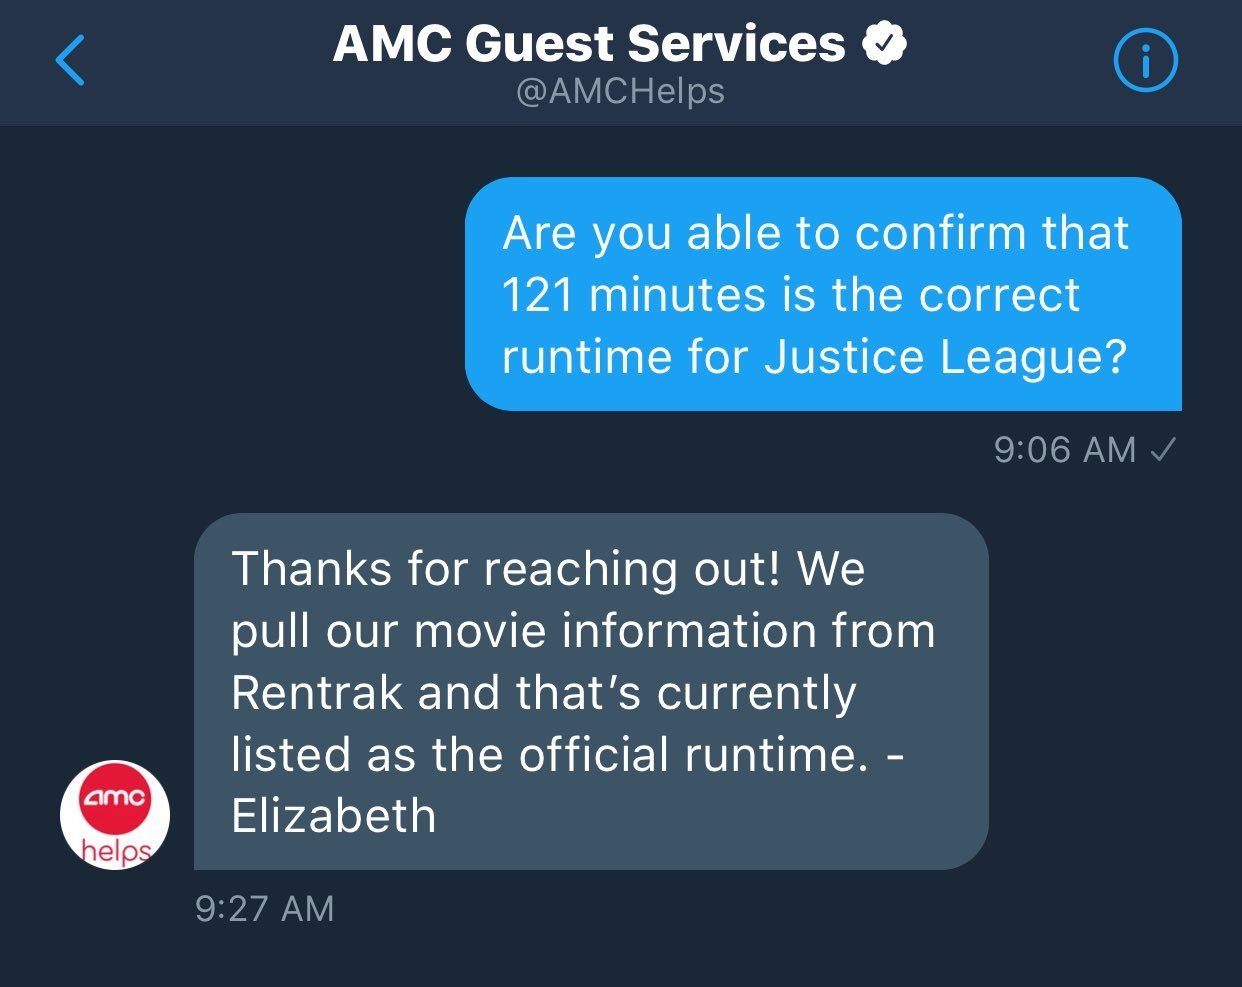 Screenshot of AMC's response concerning the Justice League runtime